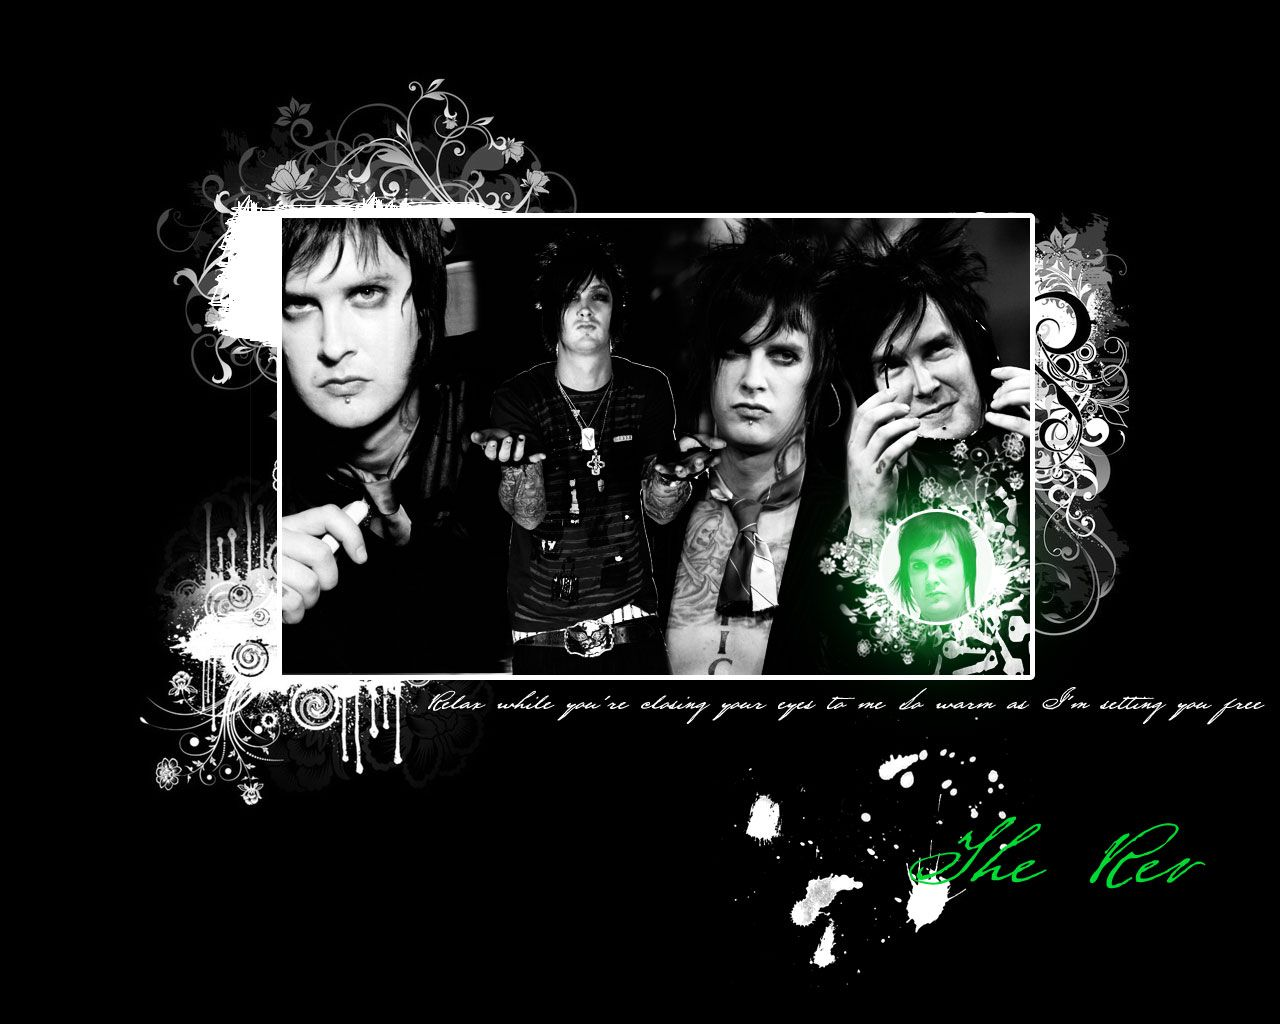 a7x the rev wallpaper Avenged Sevenfold Avenged sevenfold The 1280x1024